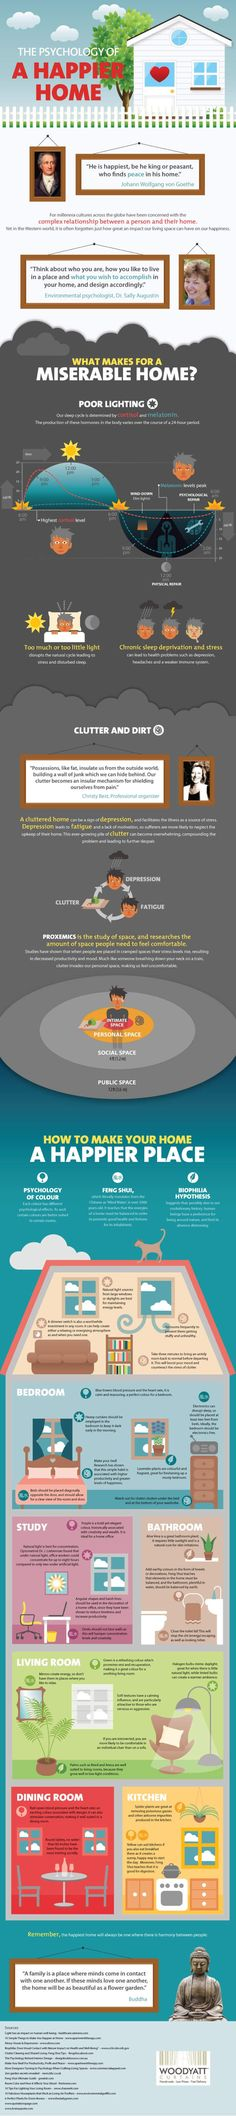 Looking to make your home the happiest place on earth? There are a couple of things you need to know about the complex relationship between someone and its home. First, to create the best environme…